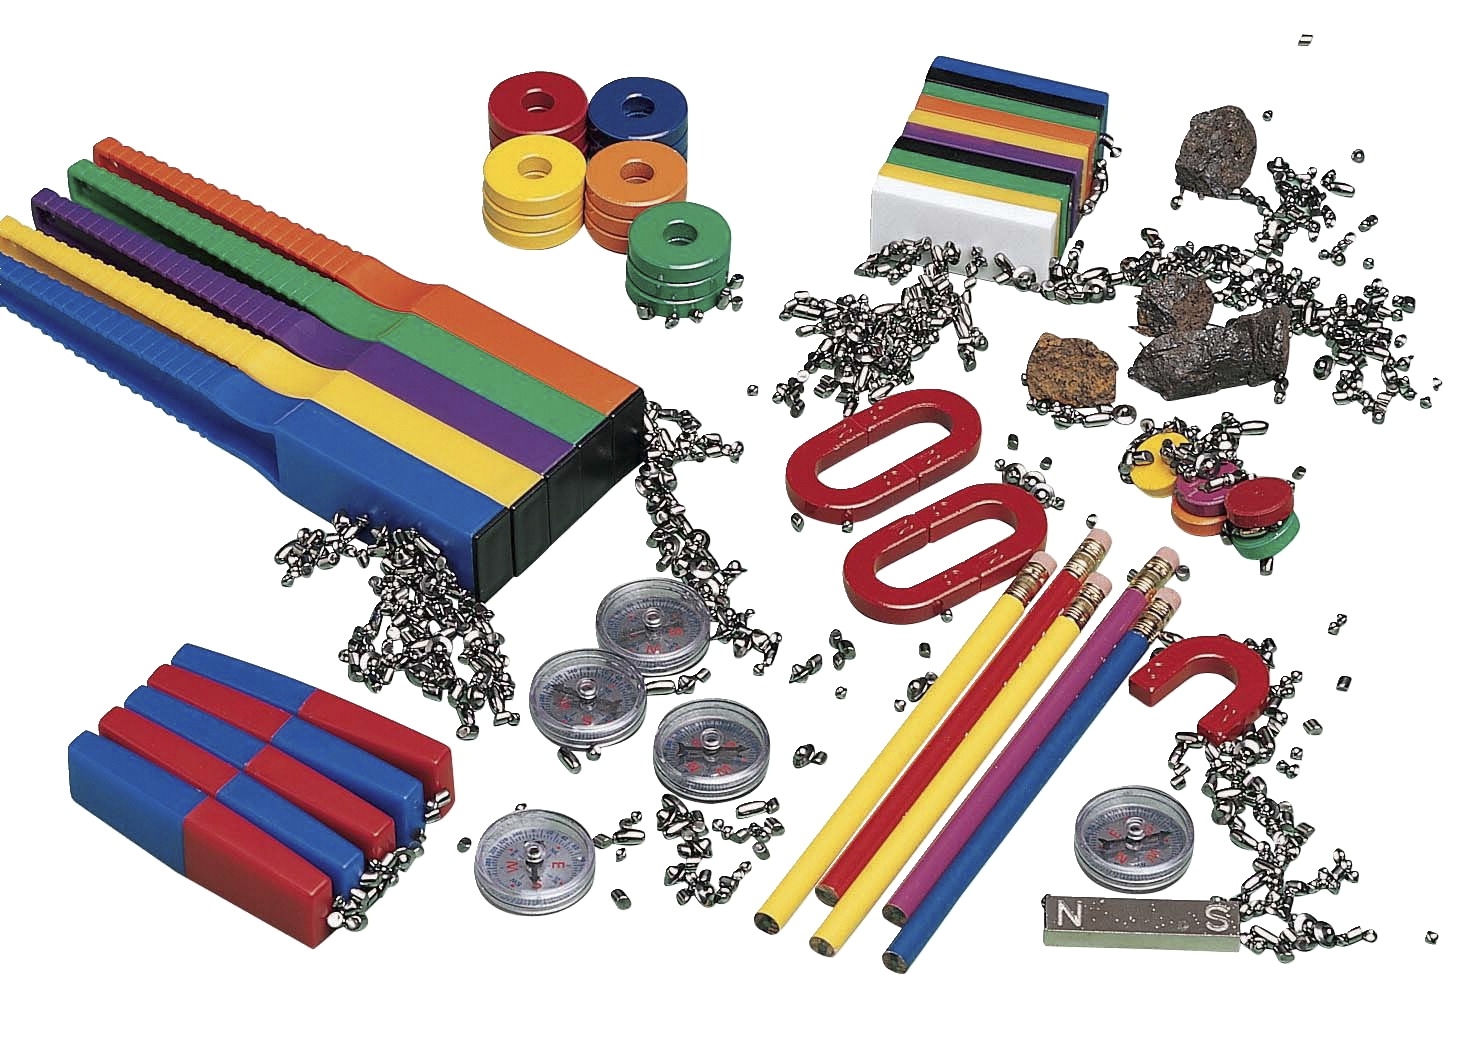 Childcraft Advanced Magnet Kit - 274435 - Instructional Materials Resources Science Activities Equipment Physical Science Projects Books 274435